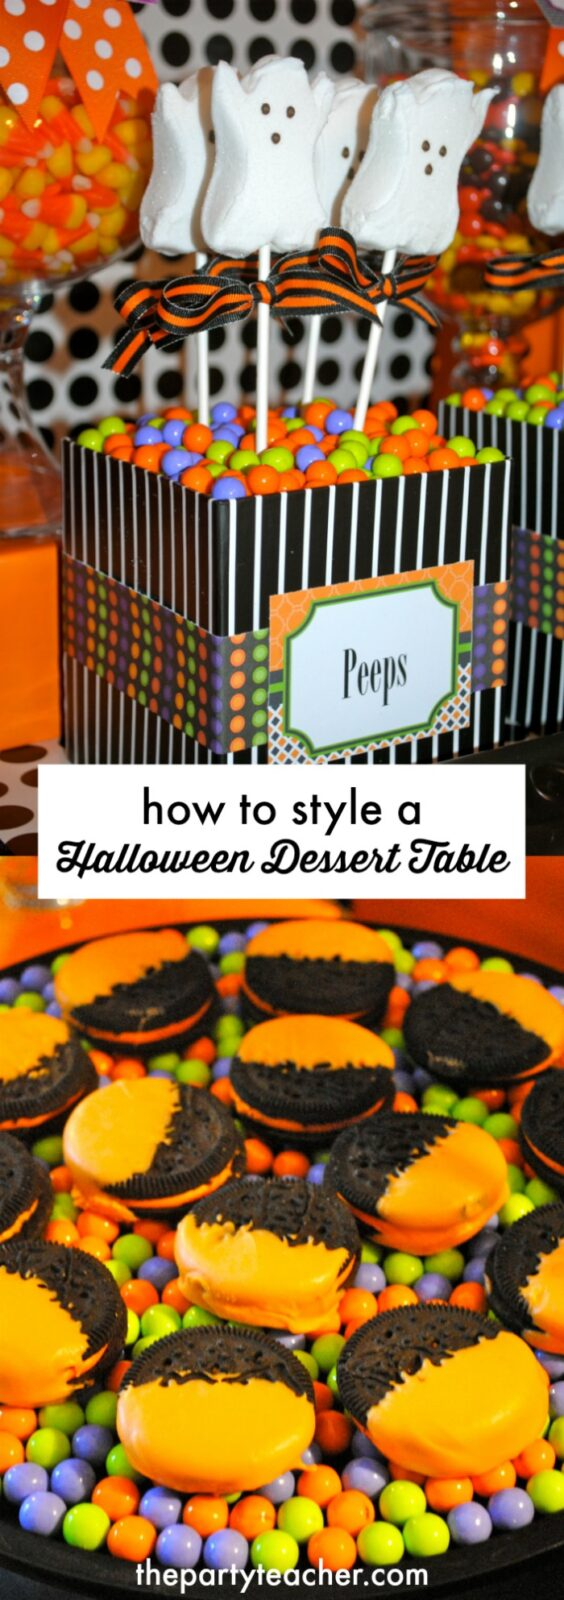 How to style a Halloween Dessert Table by The Party Teacher